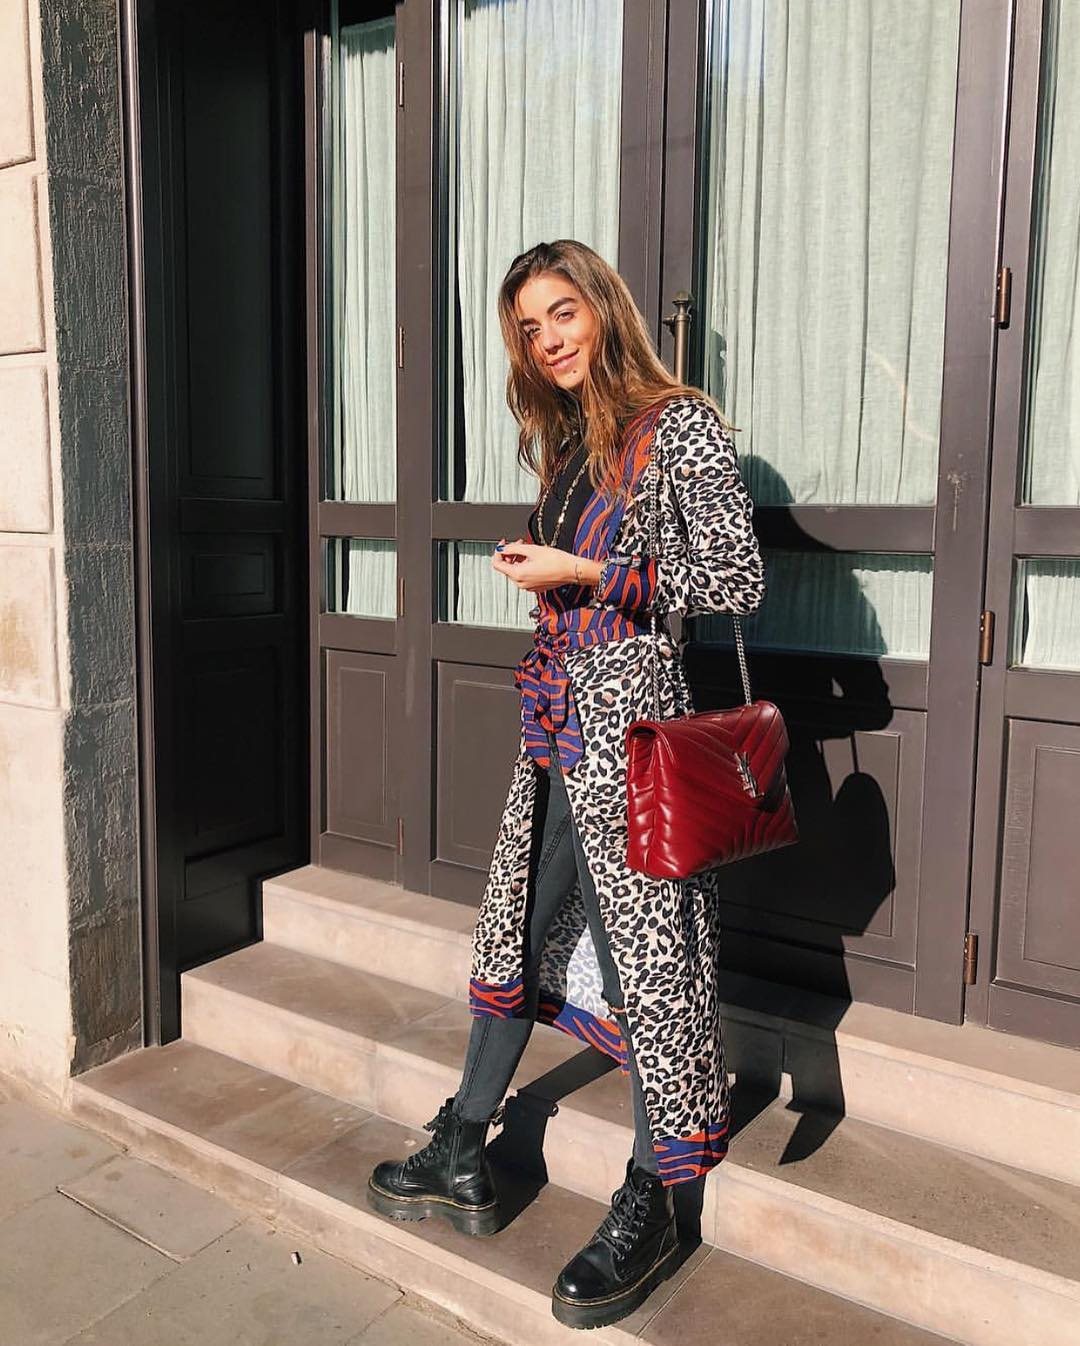 Best Animal Print Outfit Inspiration 2021